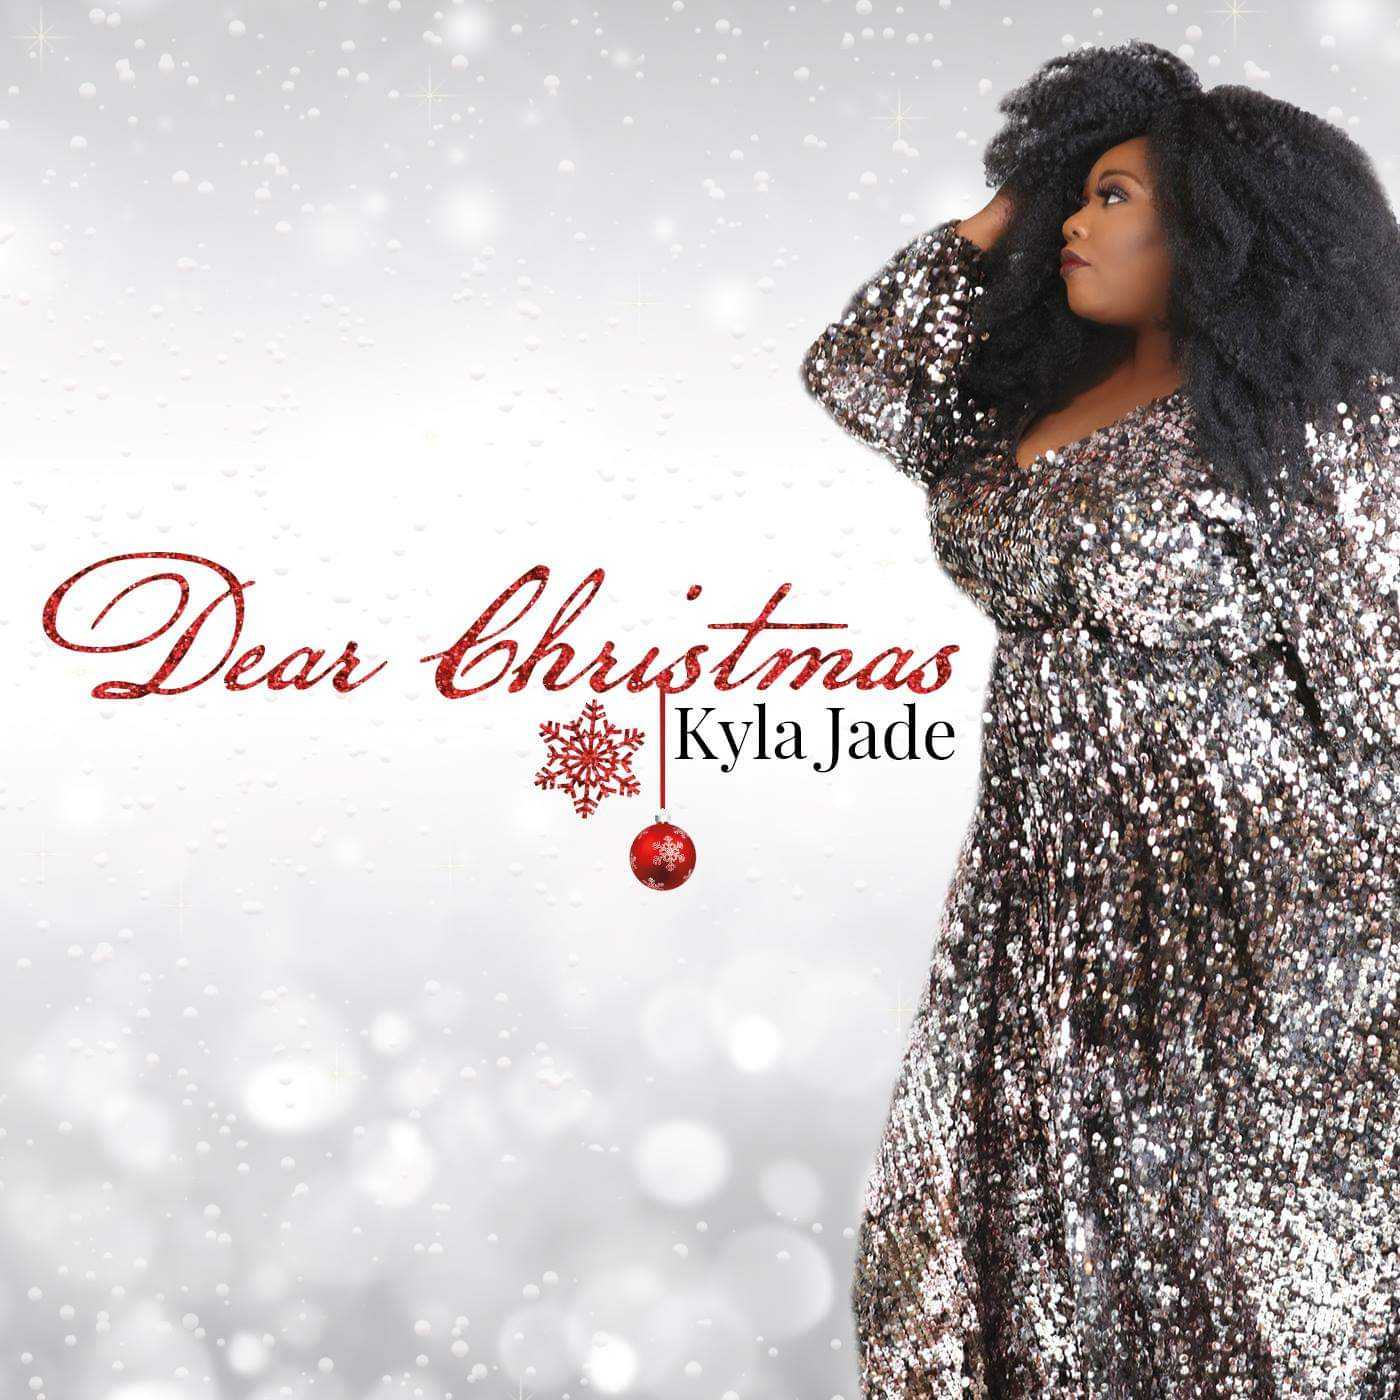 Kyla Jade / Dear Christmas: Drums. Percussion. - 2018